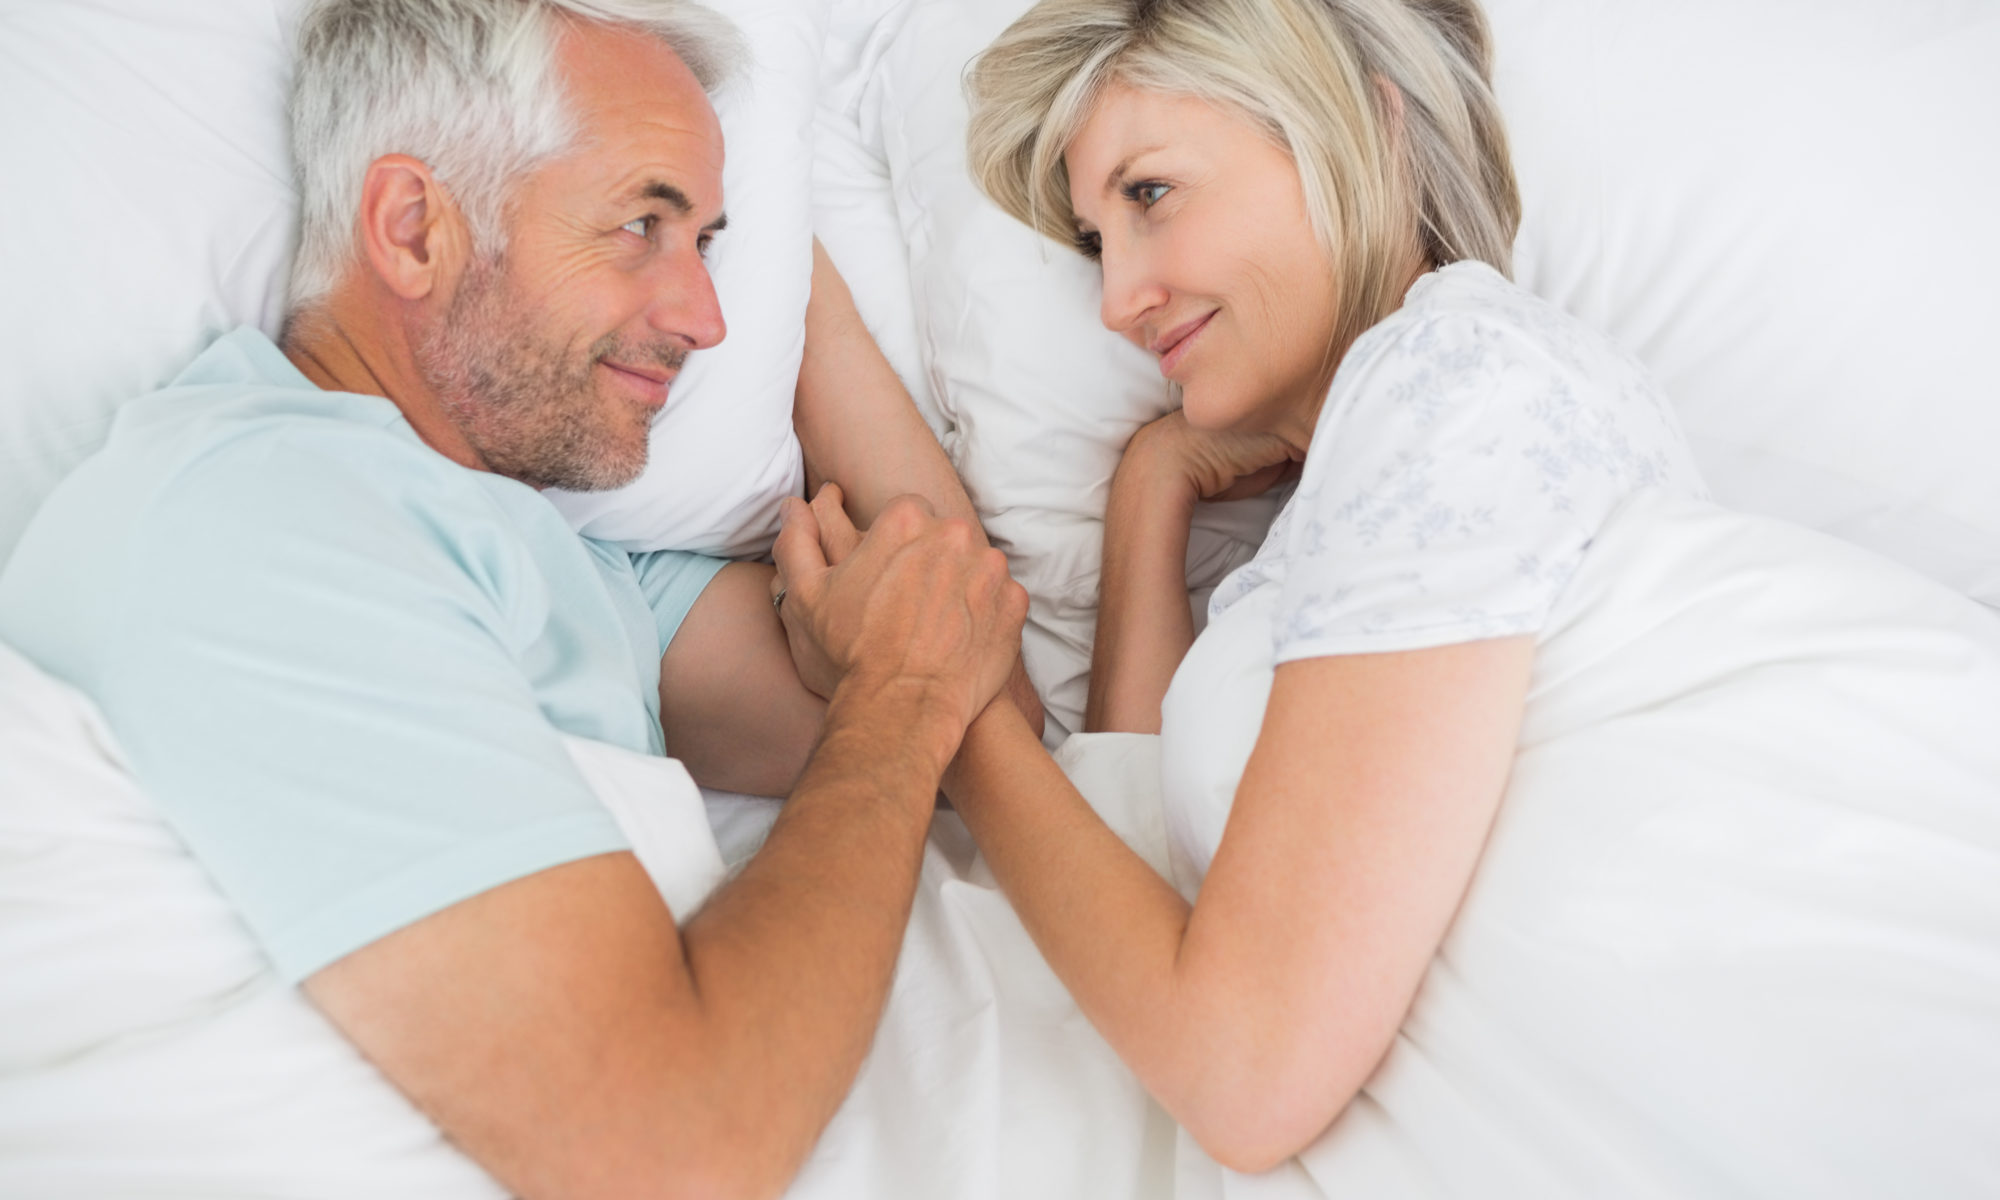 relationship from Erectile Dysfunction, Save your relationship from Erectile Dysfunction (ED)